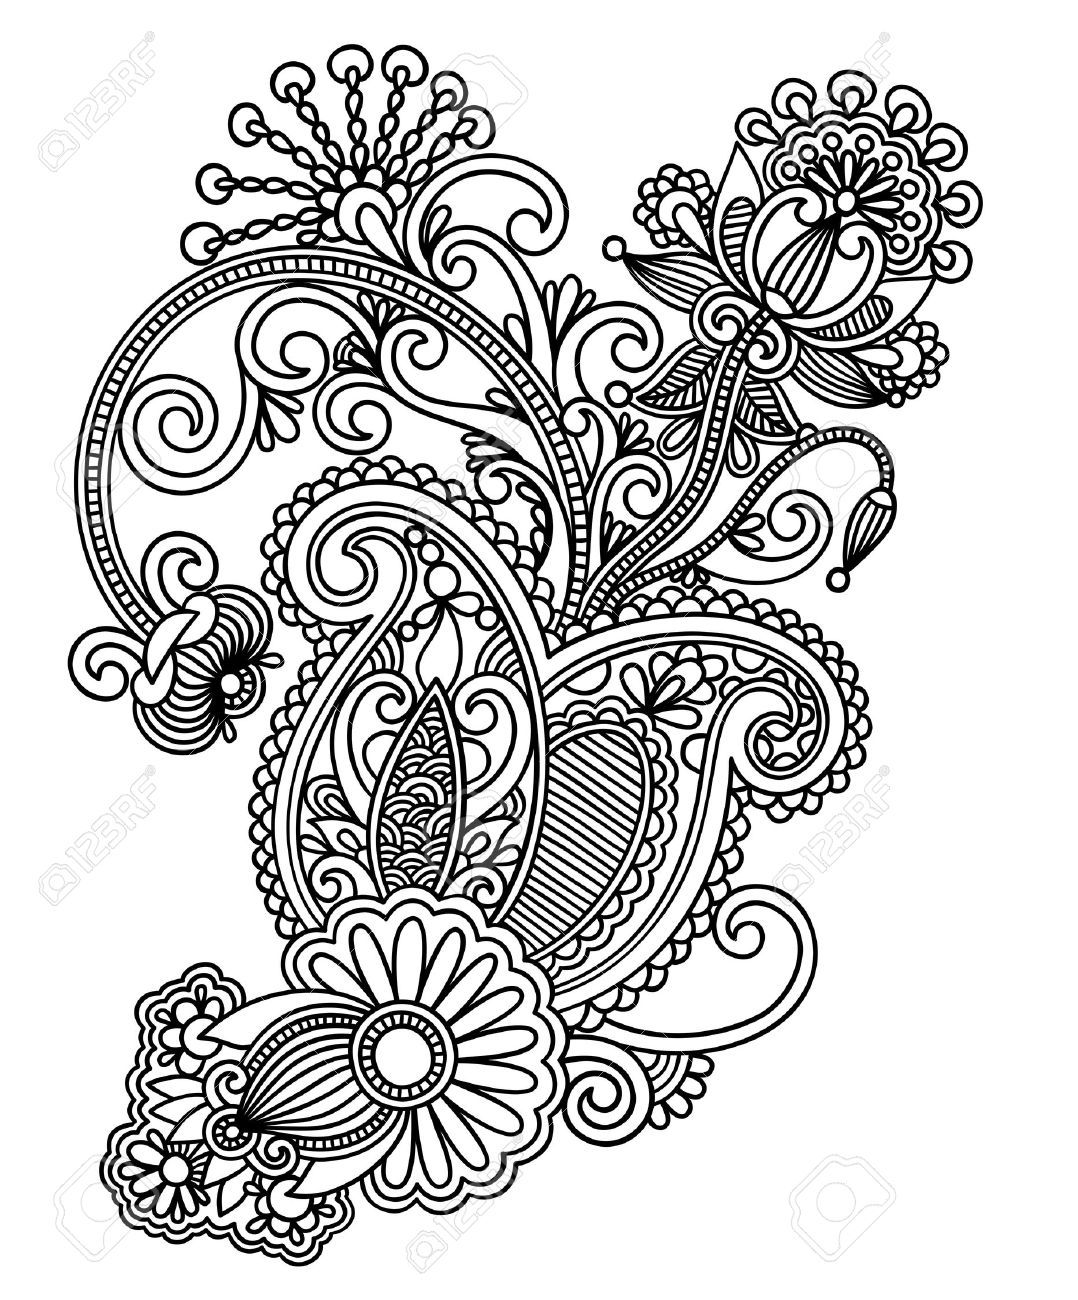 Line Design Art : Aztec floral design google search tattoo ideas